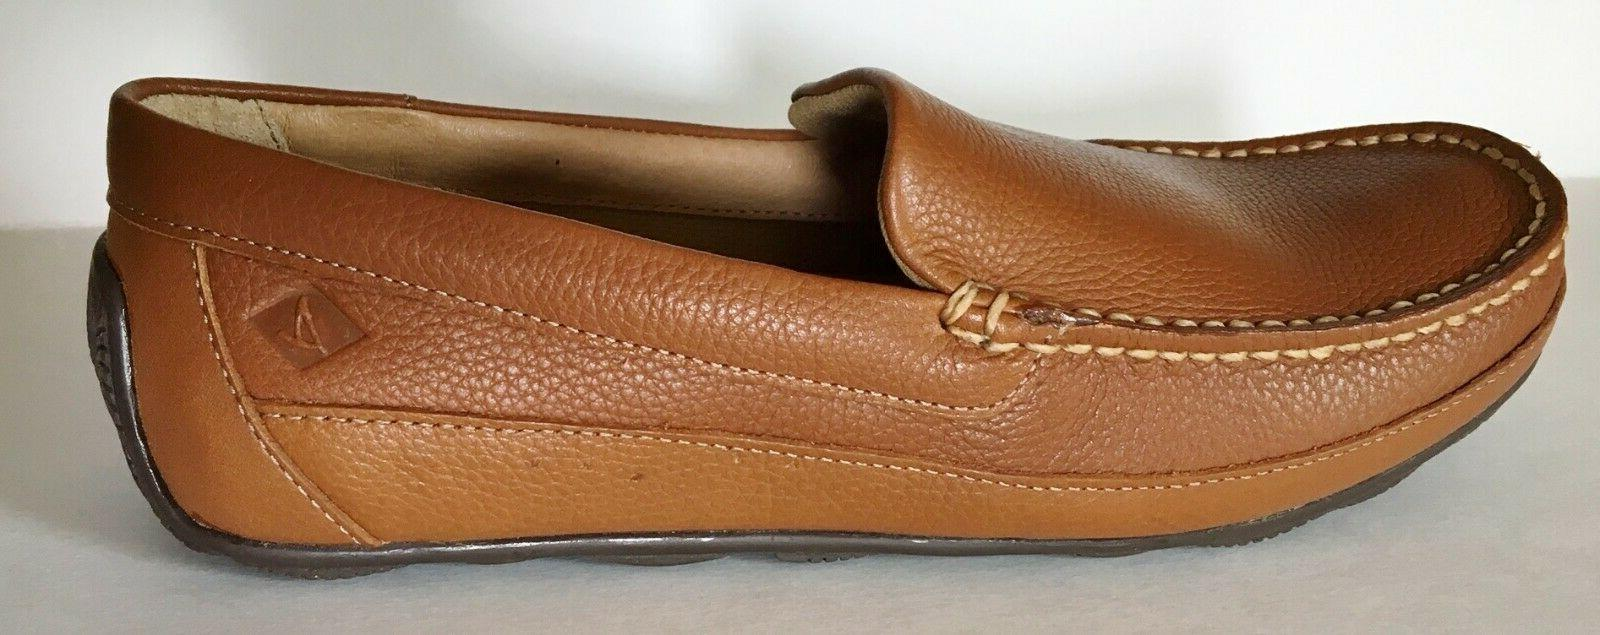 Sahara Loafer 8M NEW in Box